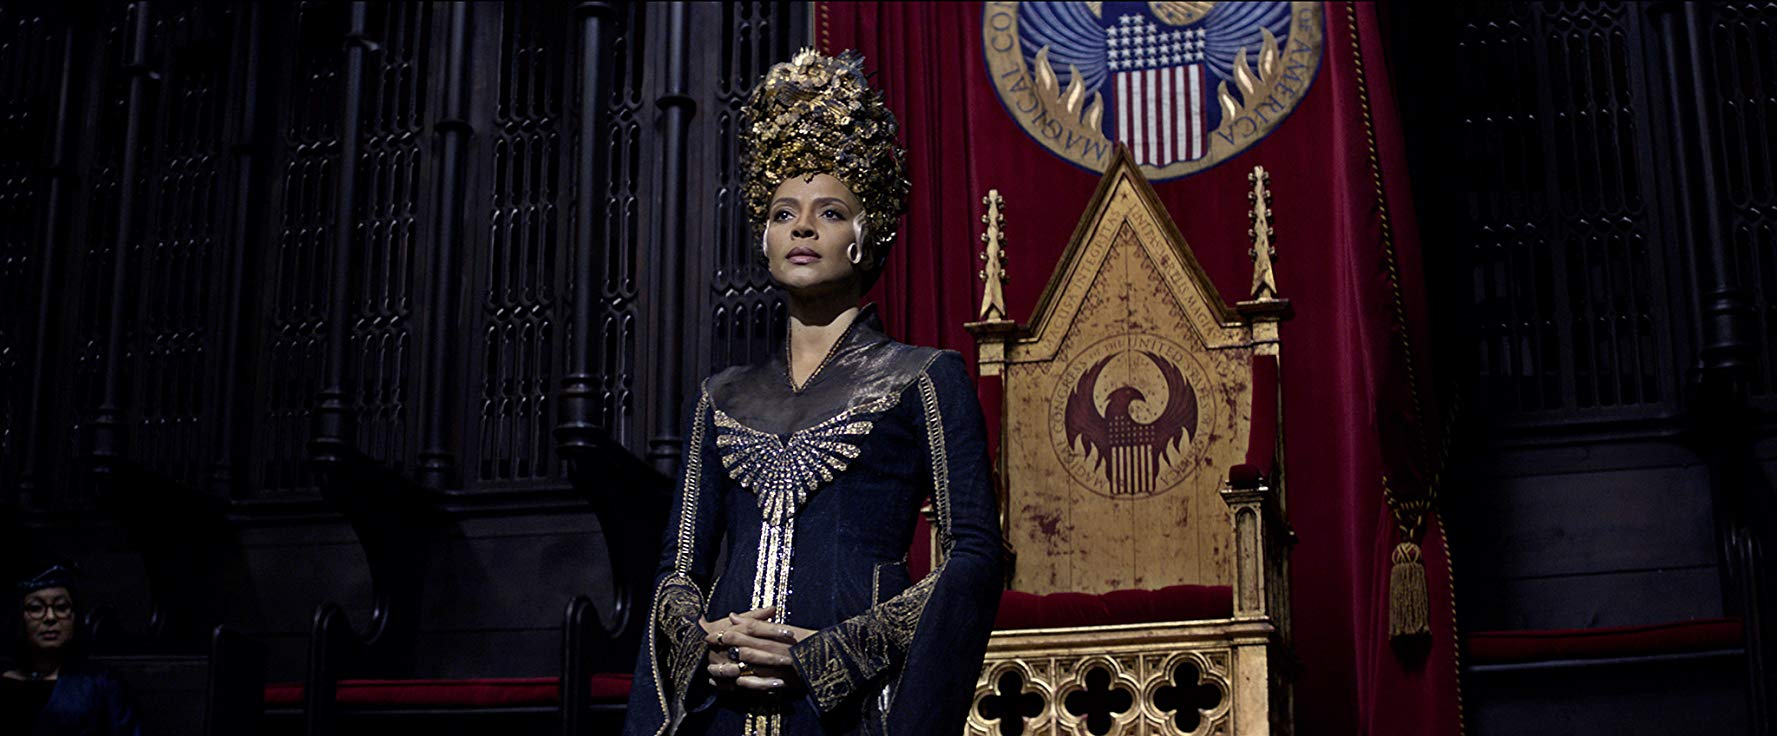 Carmen Ejogo as Seraphina Picquery in Fantastic Beasts franchise